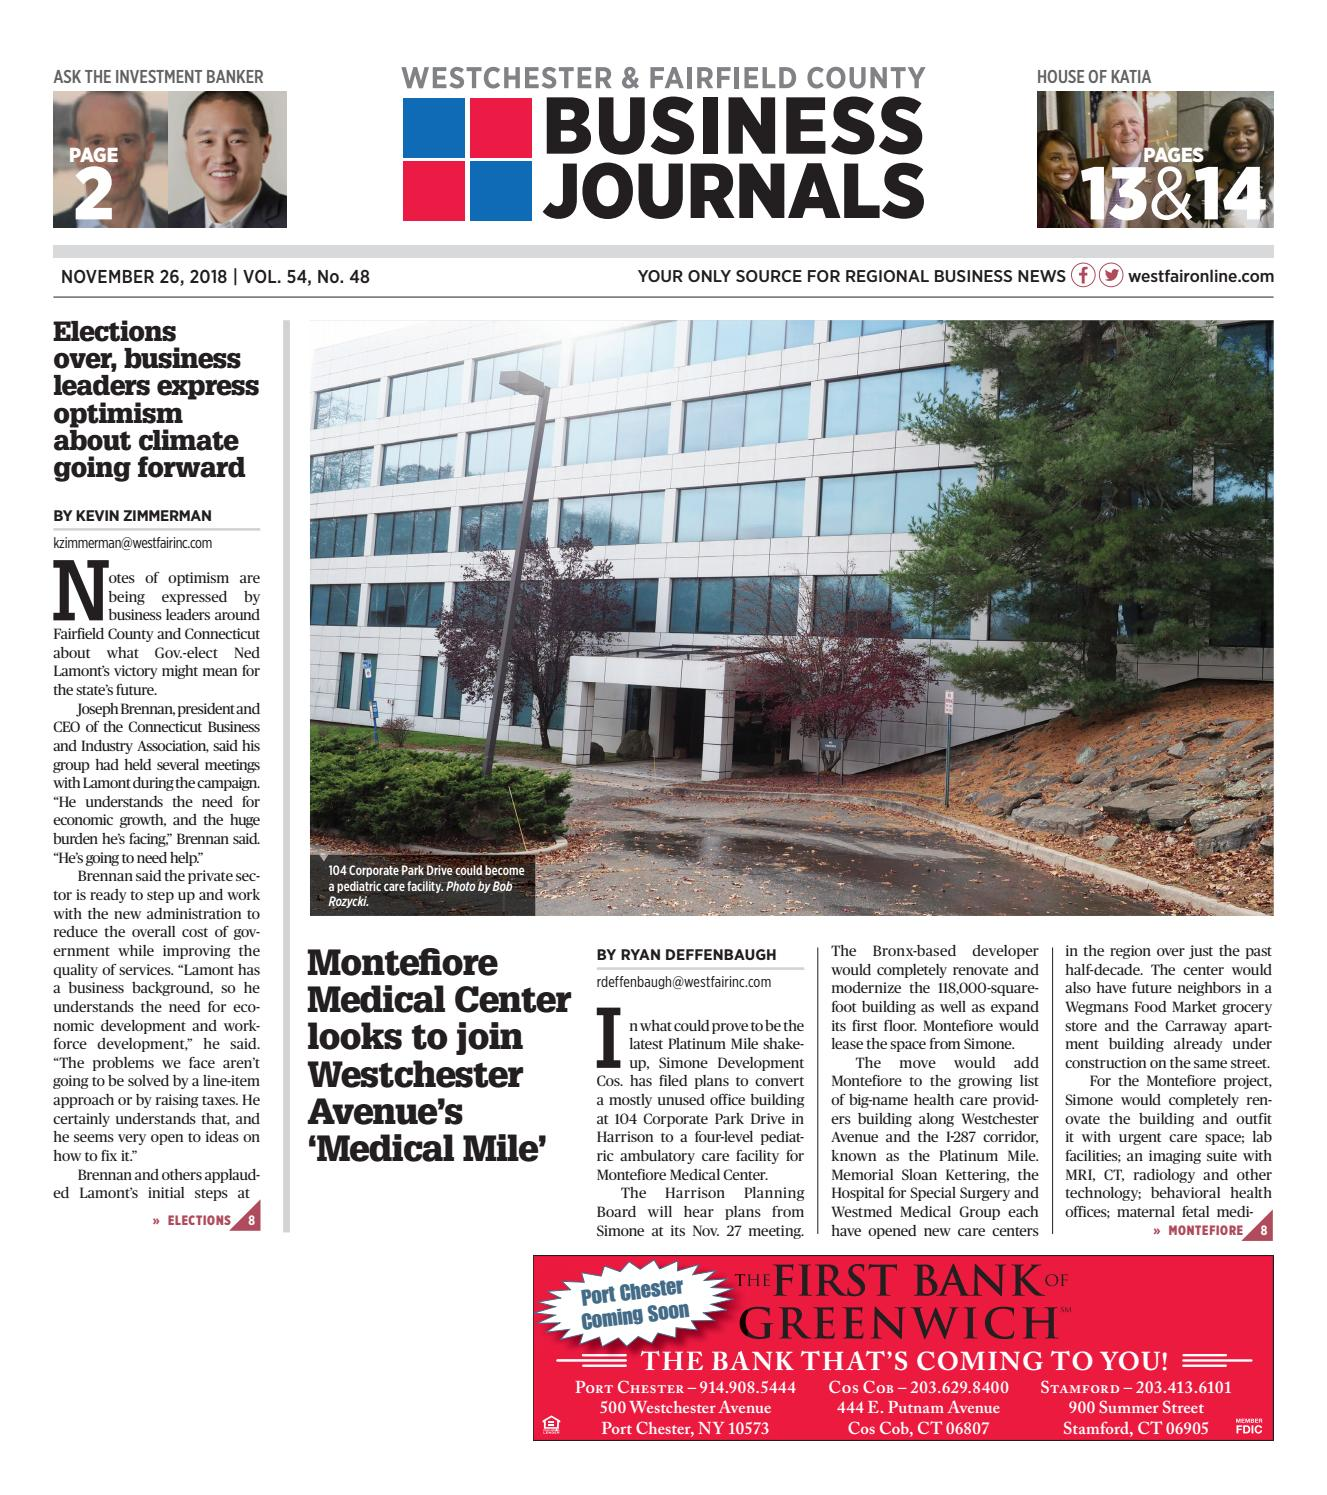 ddeced4d8d0f6 Westchester   Fairfield County Business Journals 112618 by Wag Magazine -  issuu